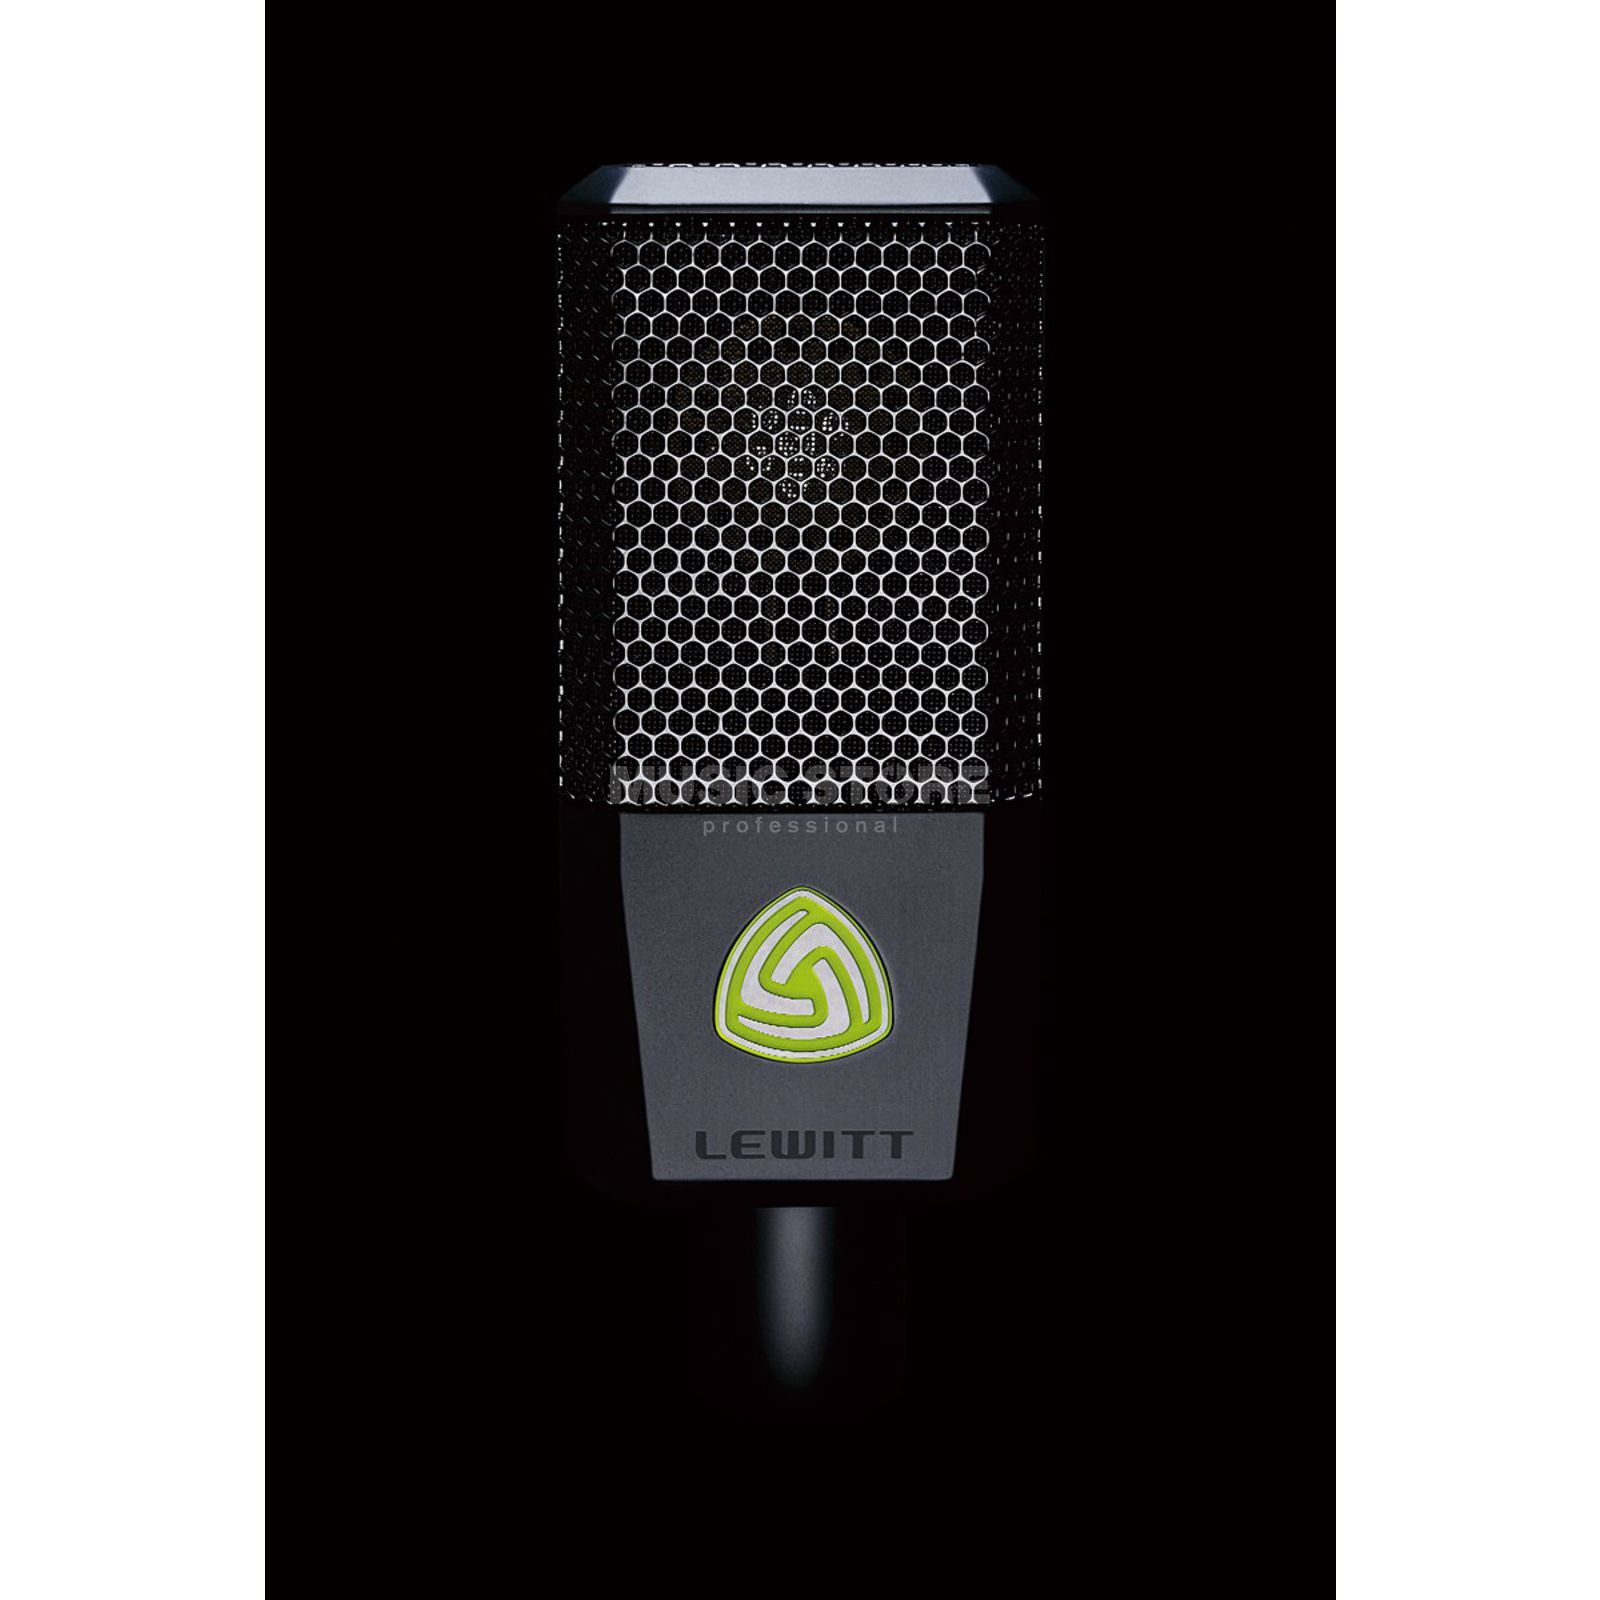 Lewitt LCT240 Large Membrane Microphone Produktbillede